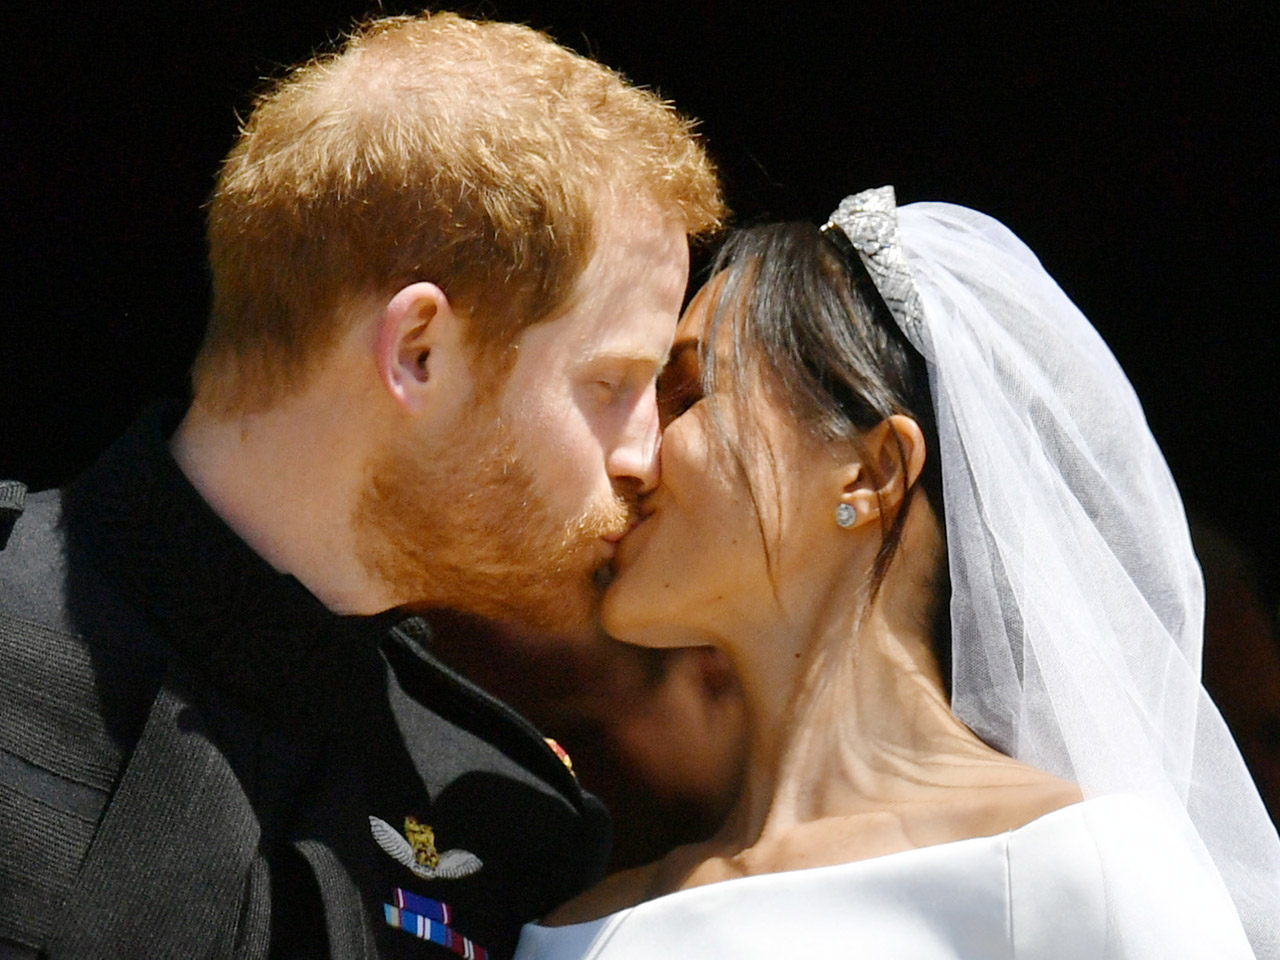 All The Best Photos From Meghan Markle And Prince Harry's Epic Royal Wedding